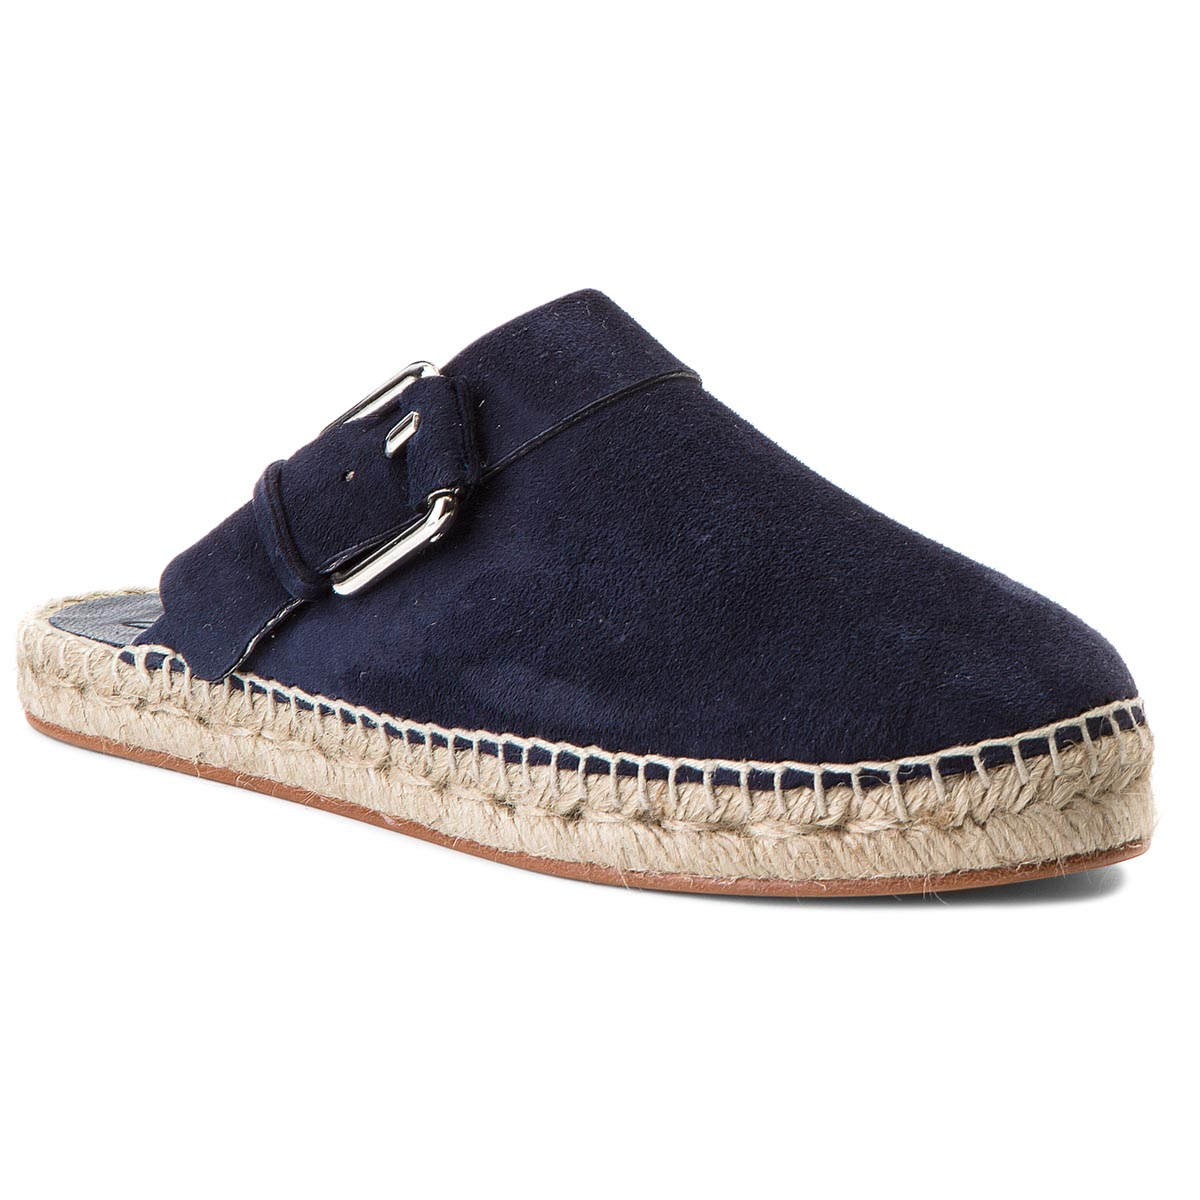 Espadrilles WEEKEND MAXMARA - Pagine 55210584600  Navy 003